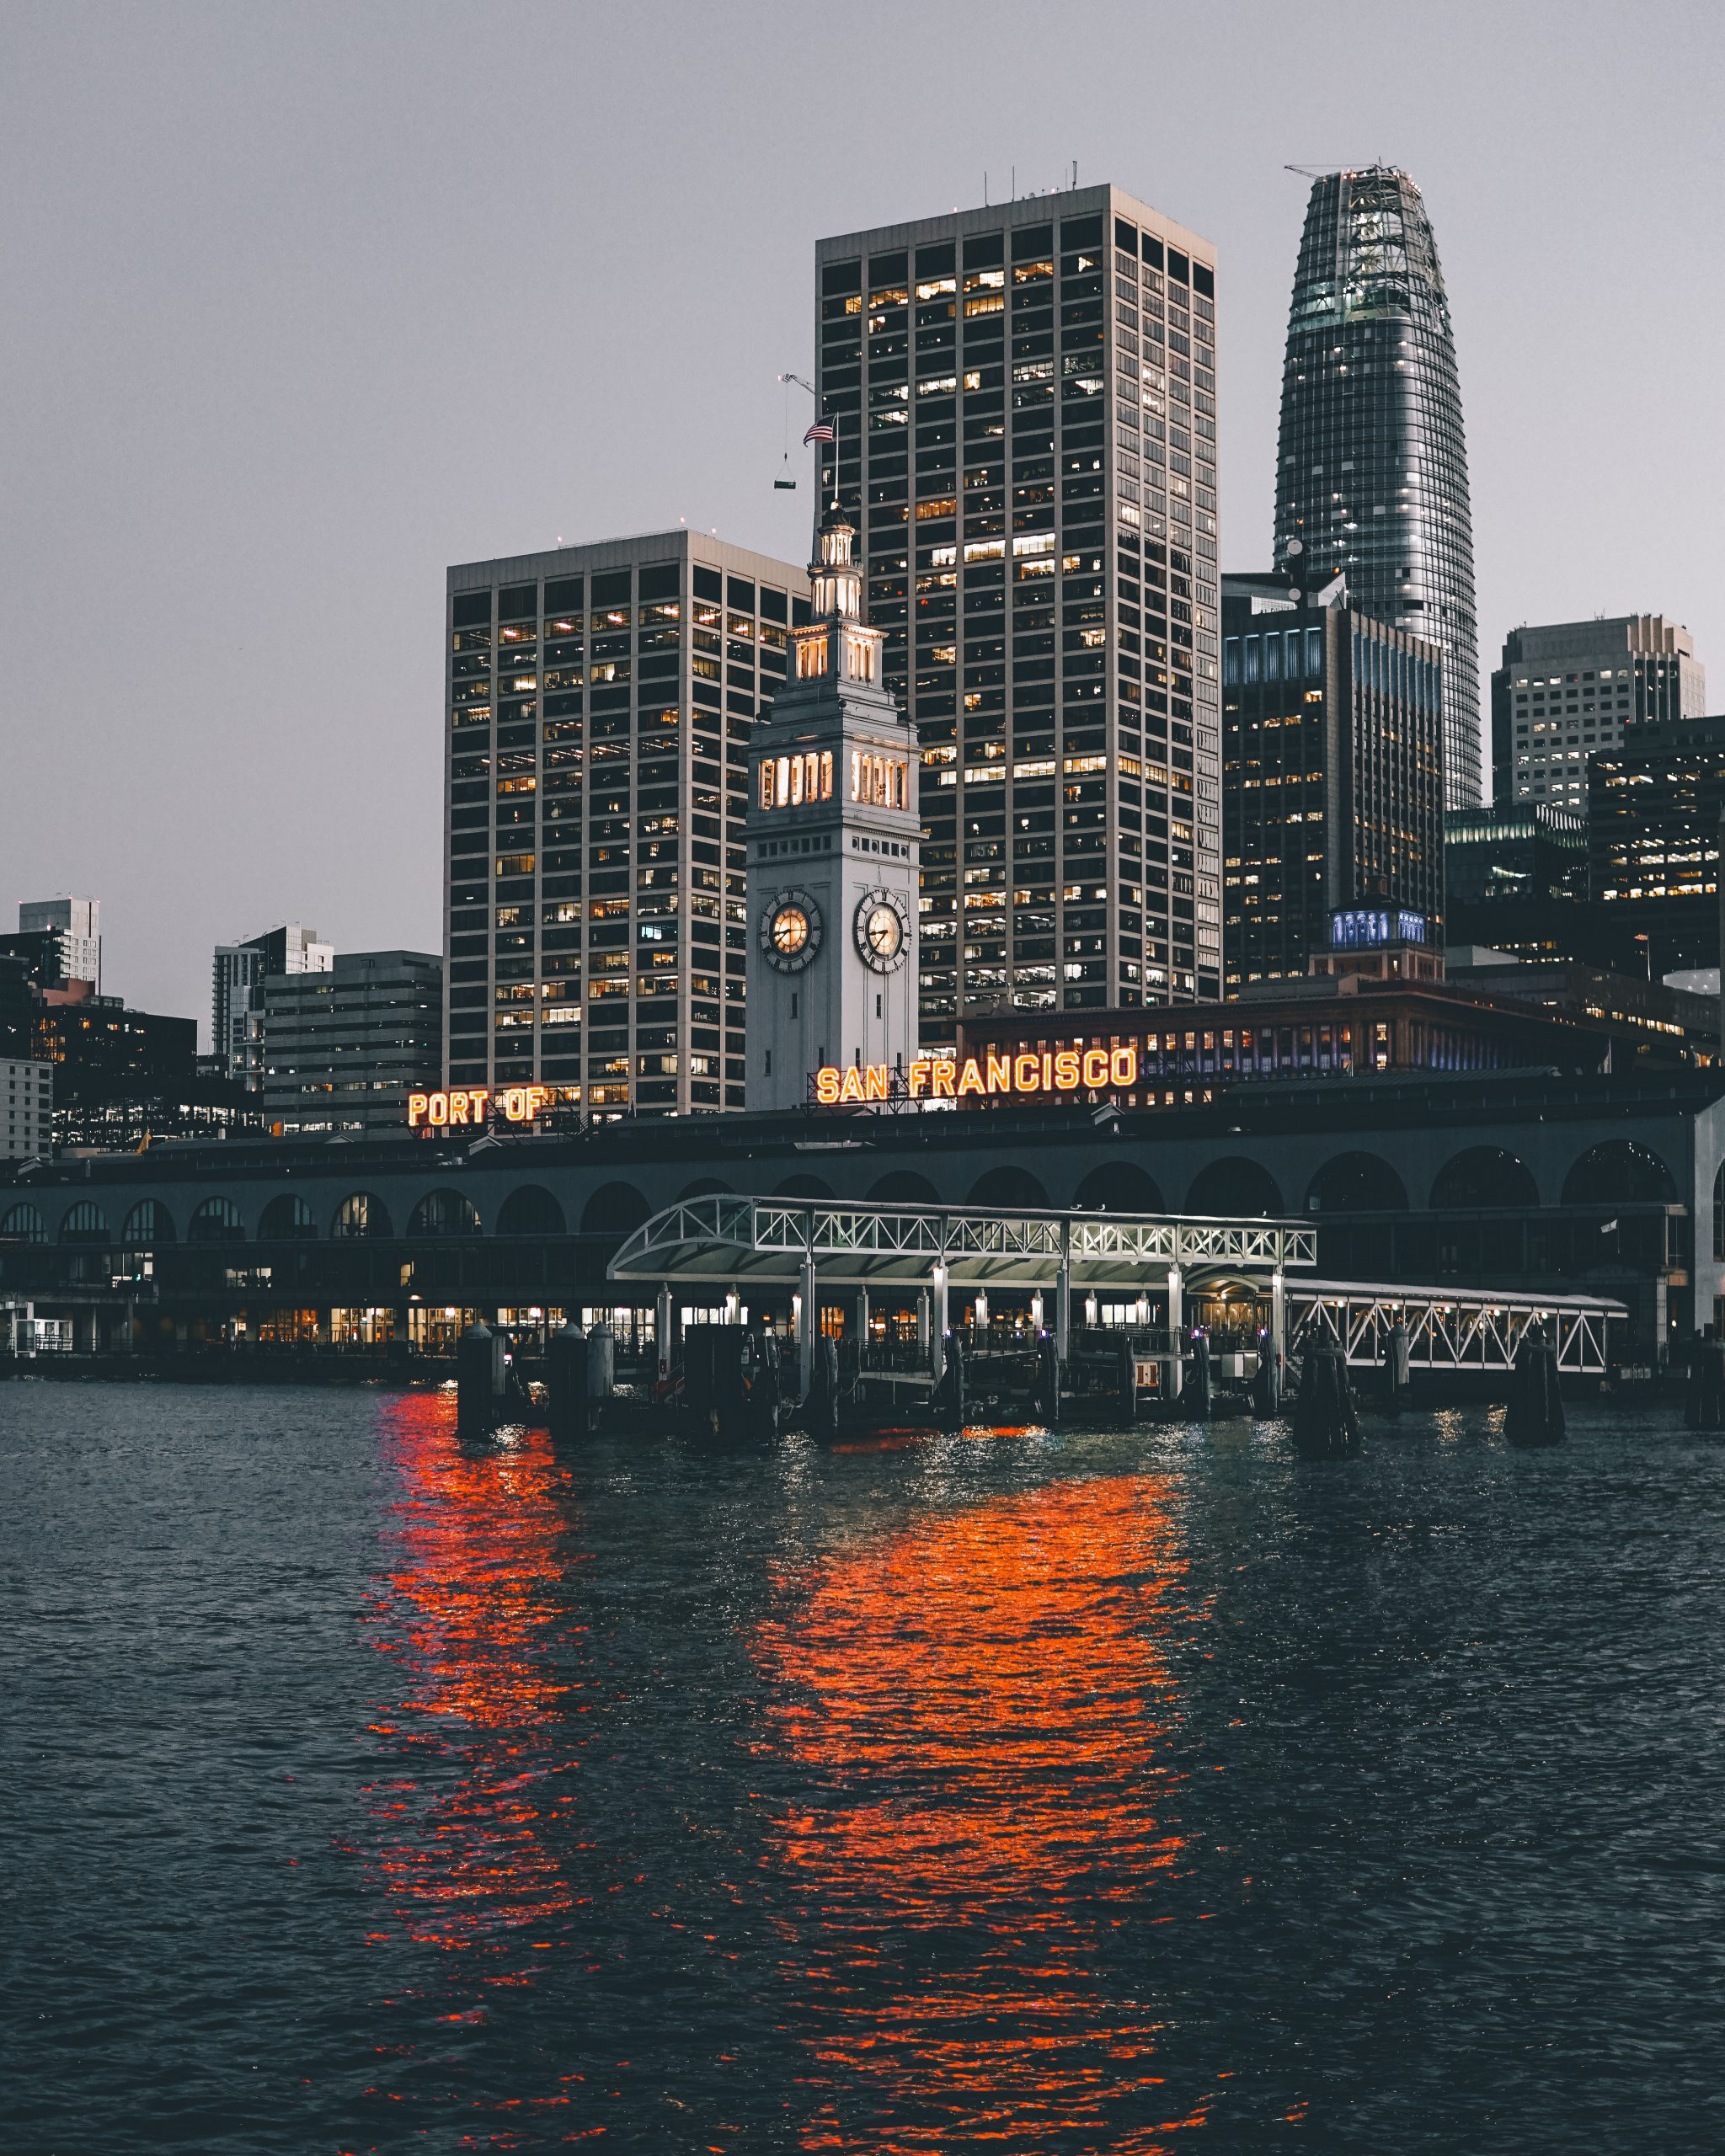 SF image with lights